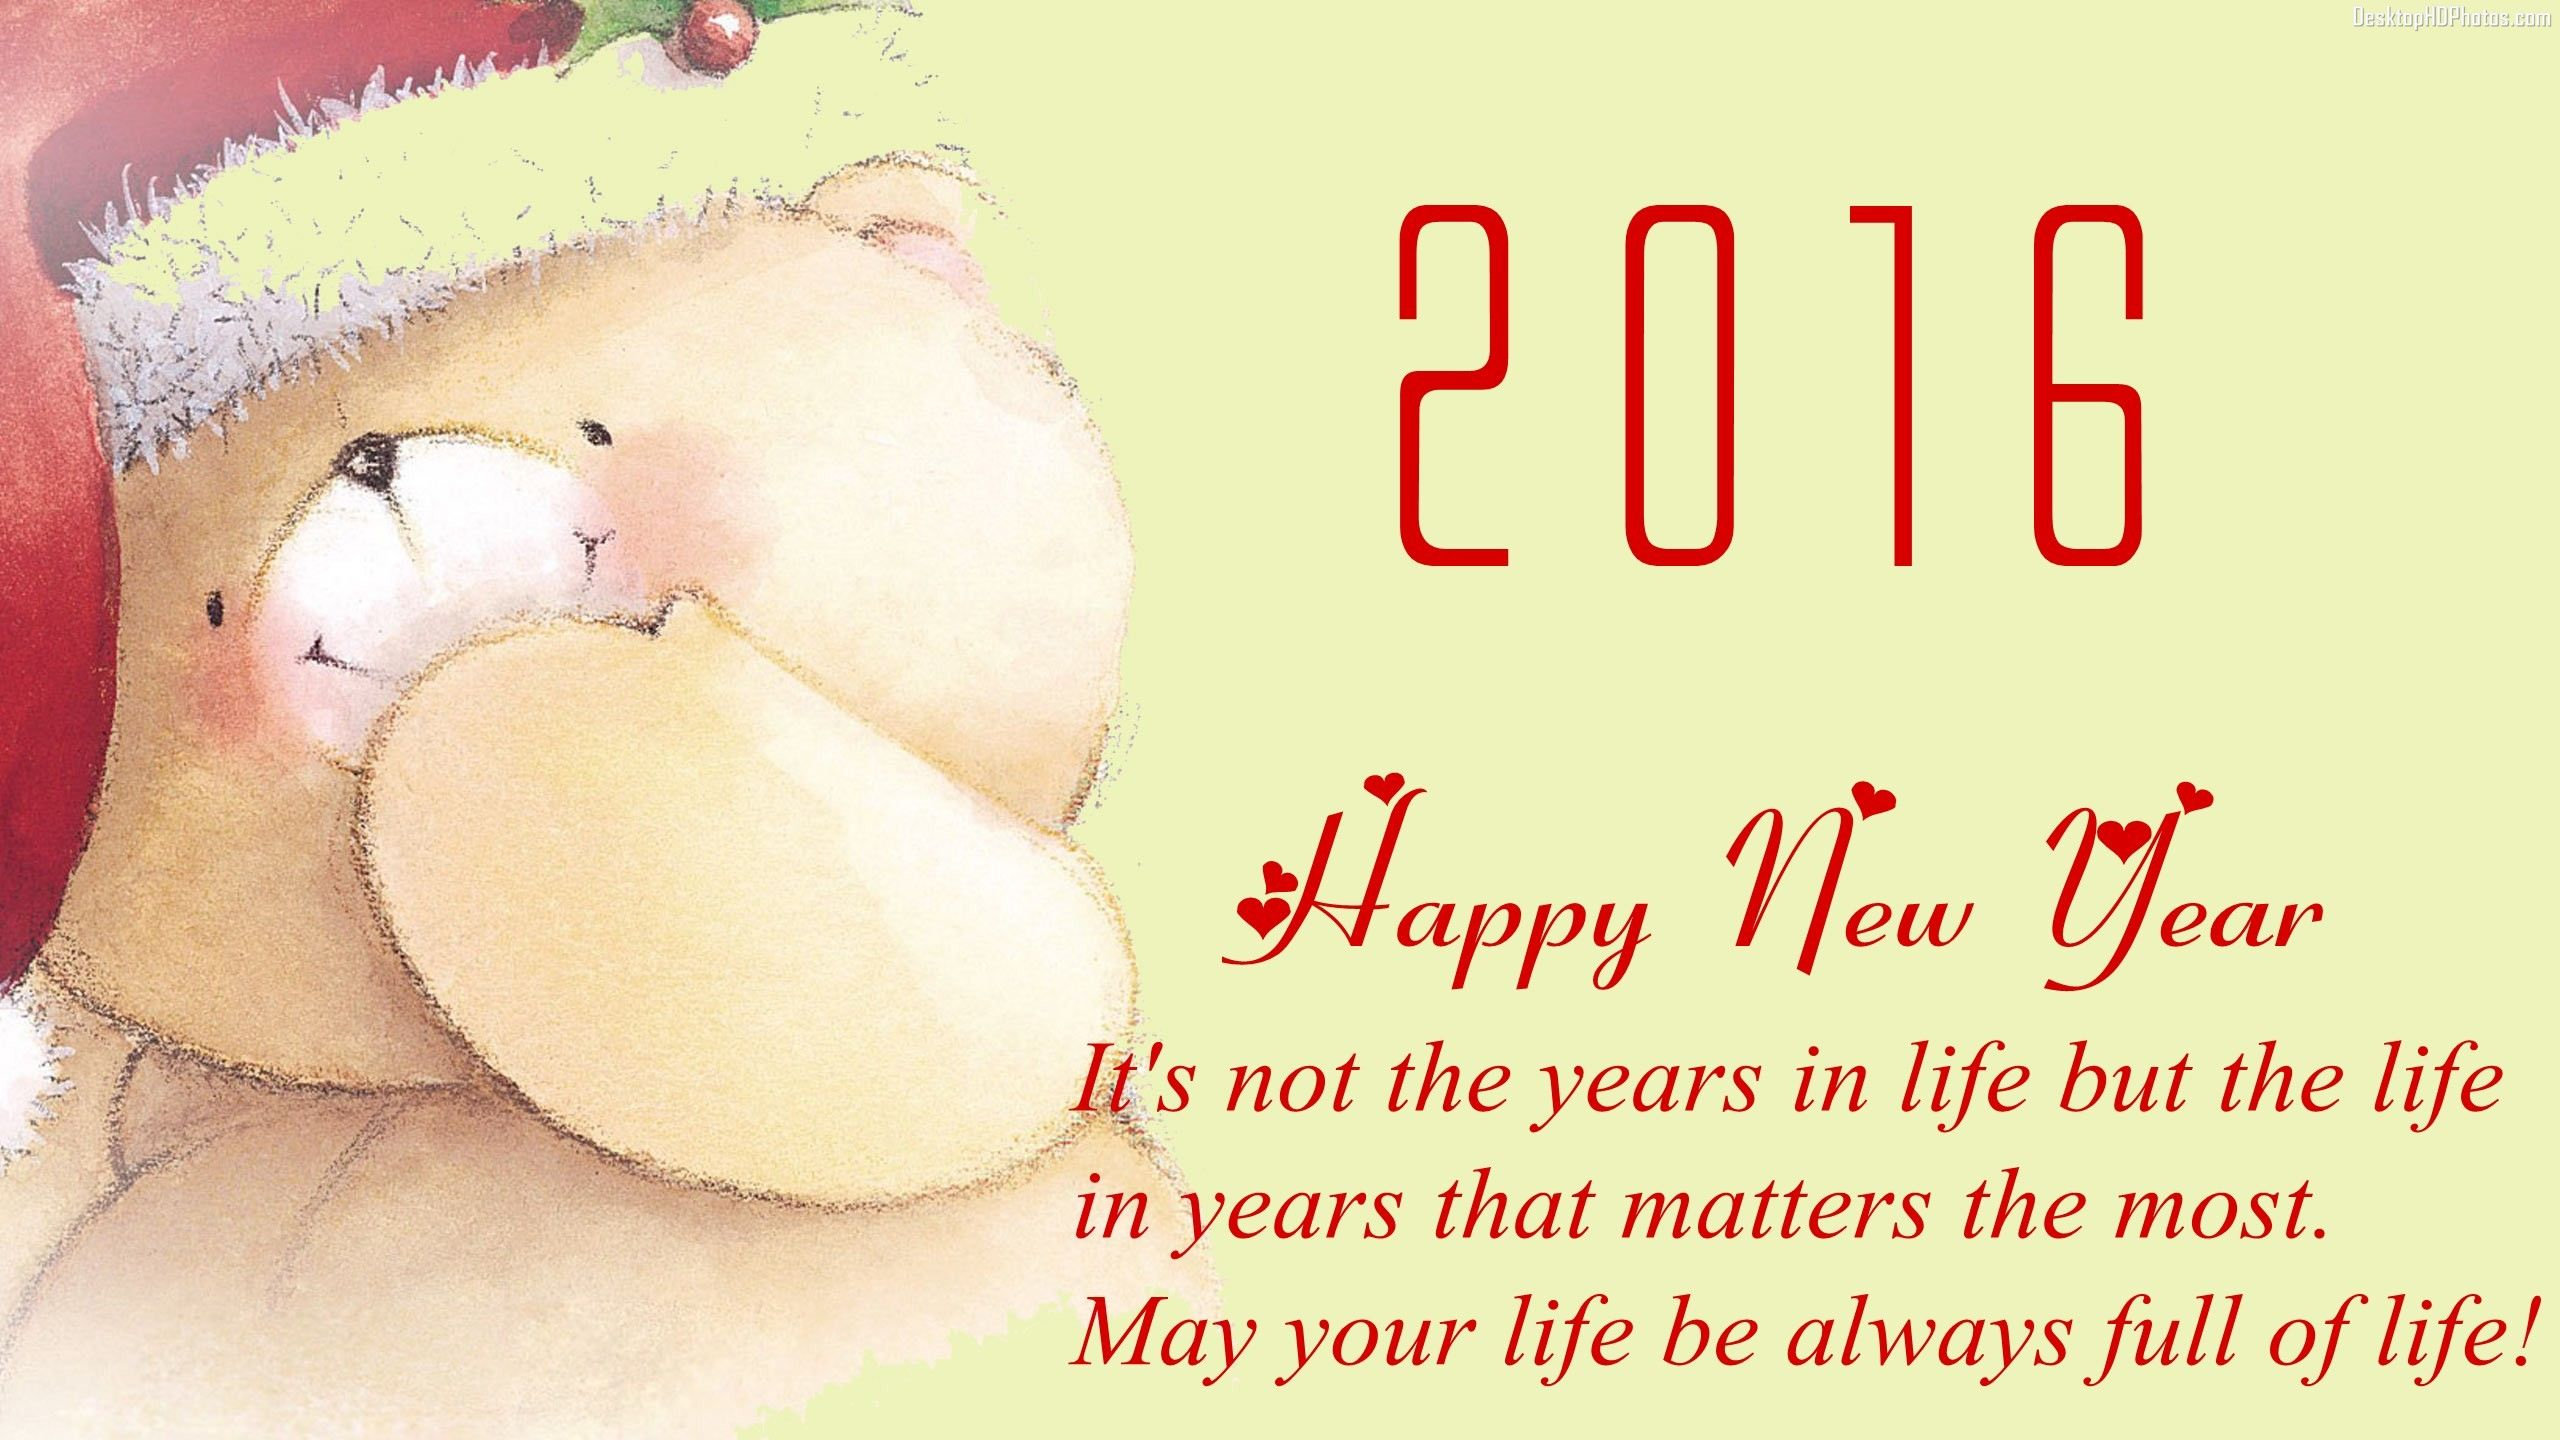 Medium Crop Of Happy New Year 2016 Message